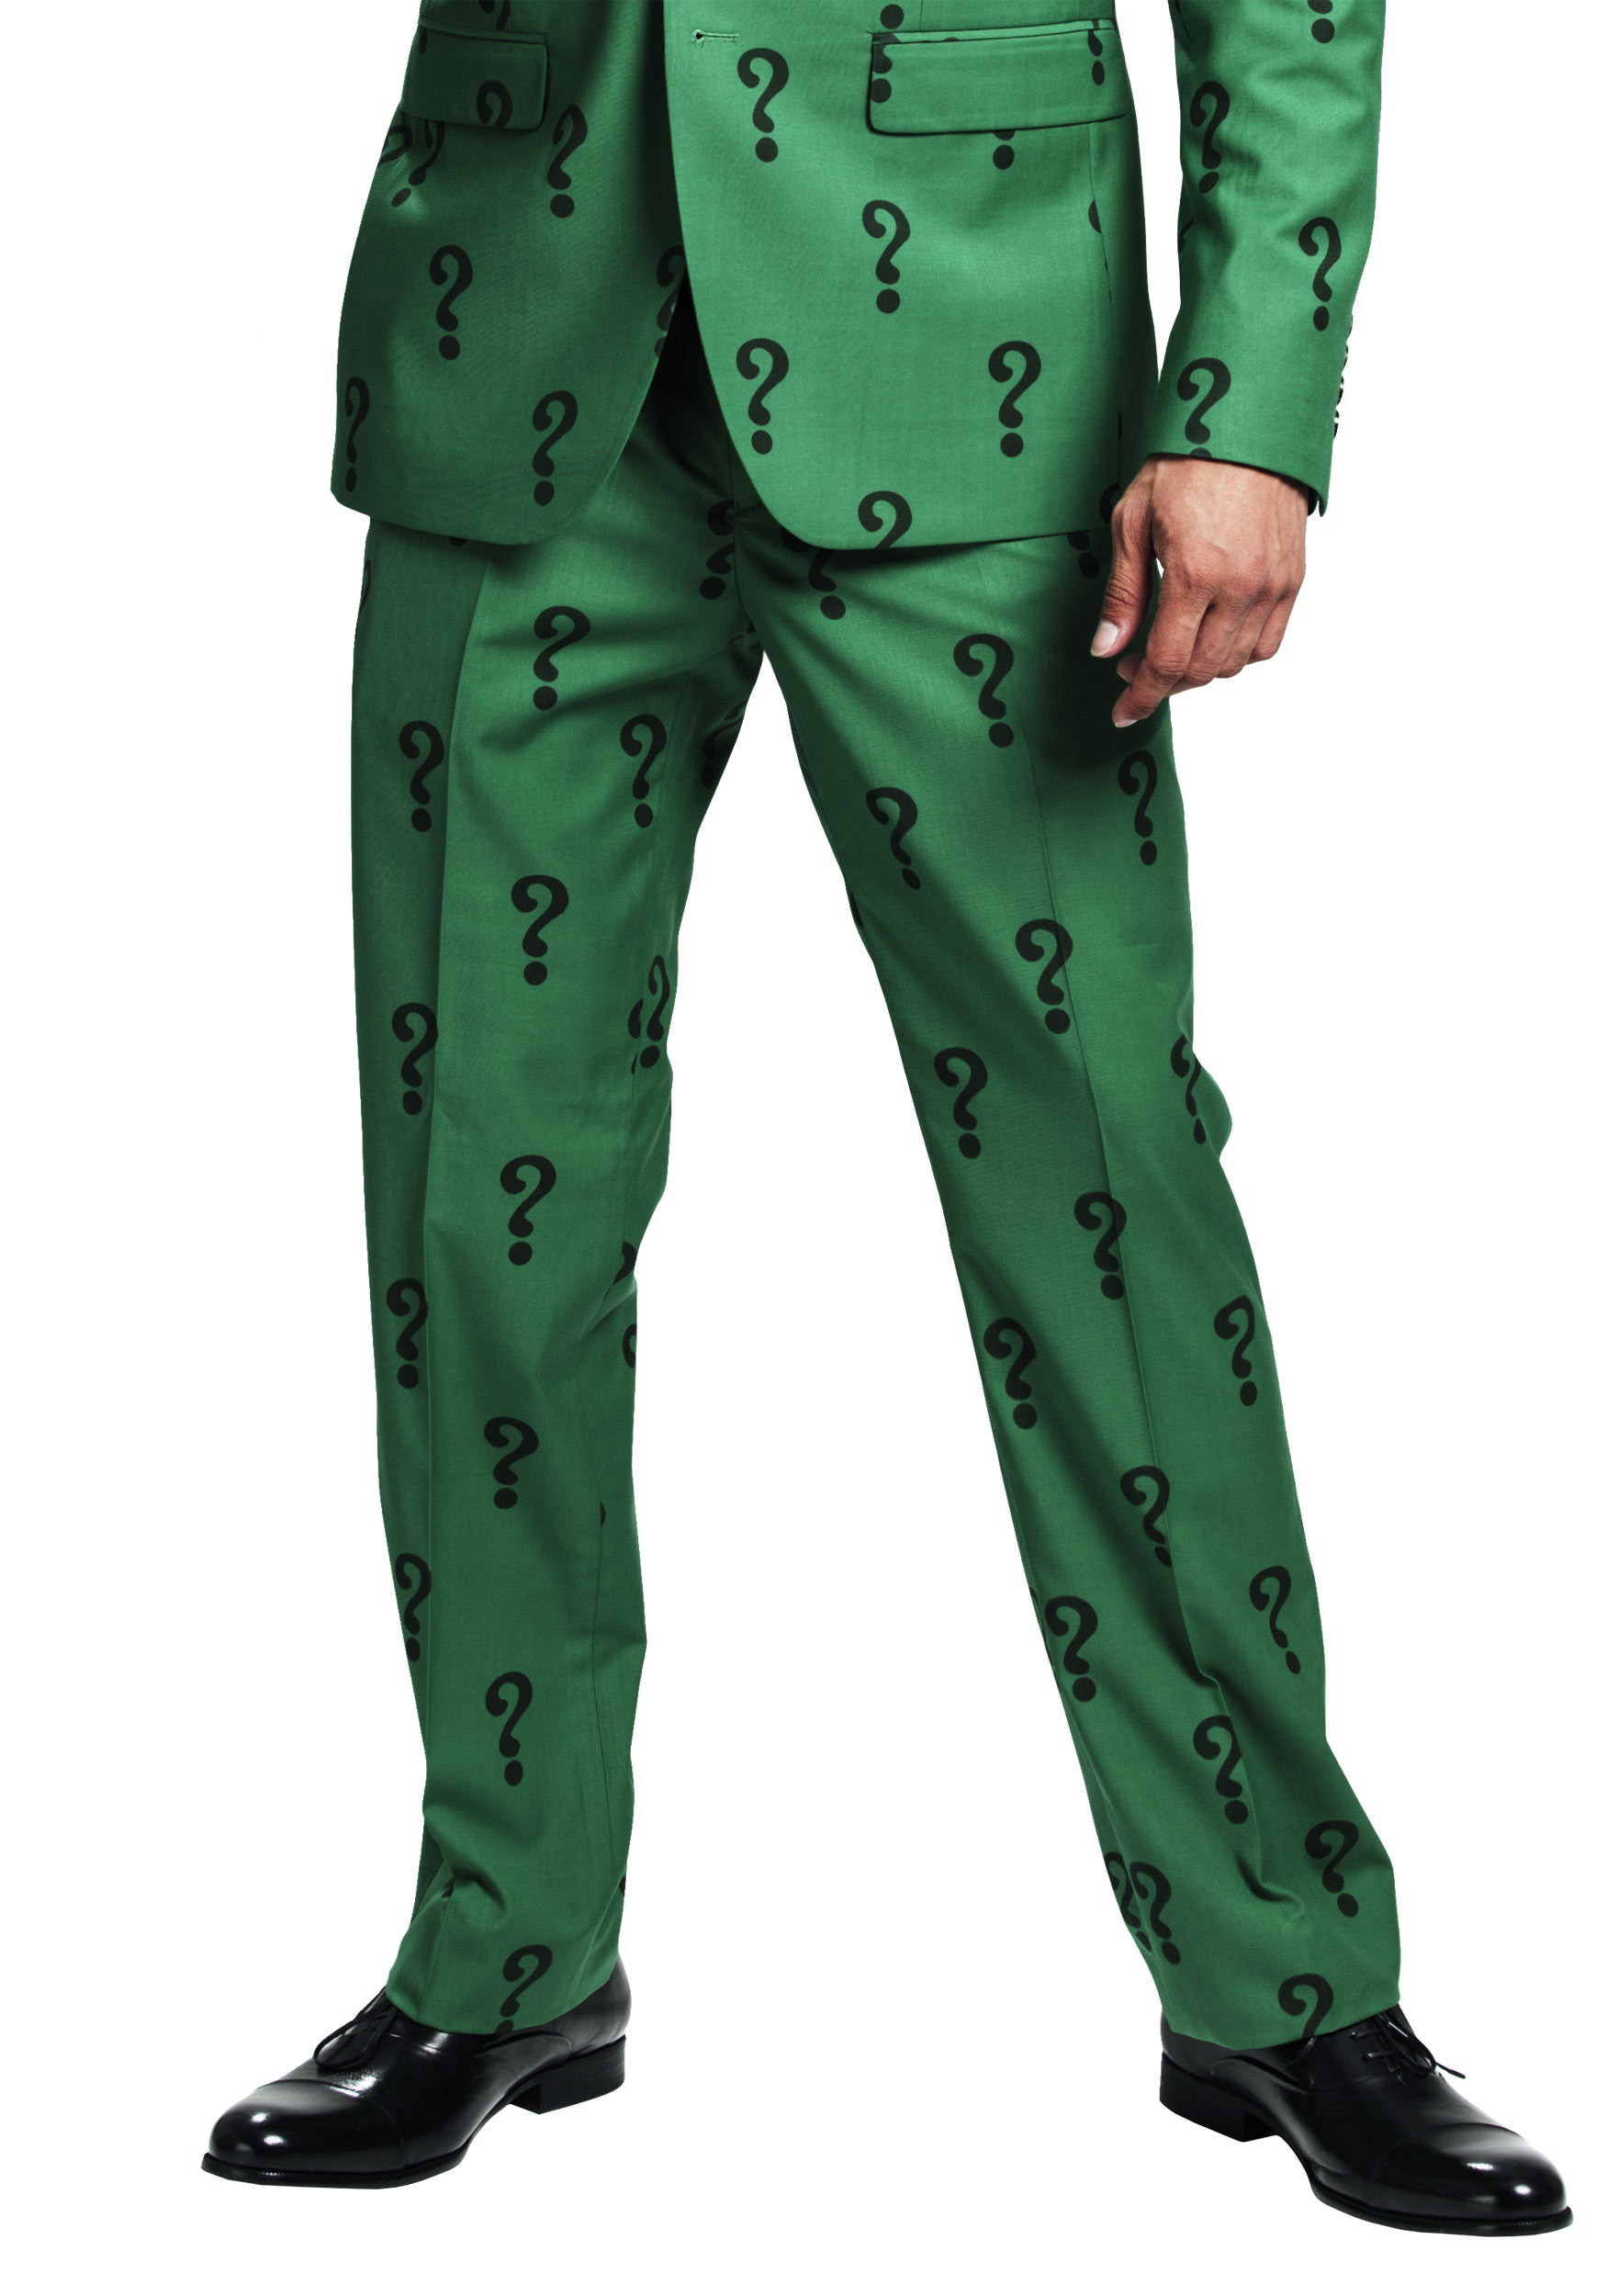 Authentic The Riddler Slim Fit Suit Pants